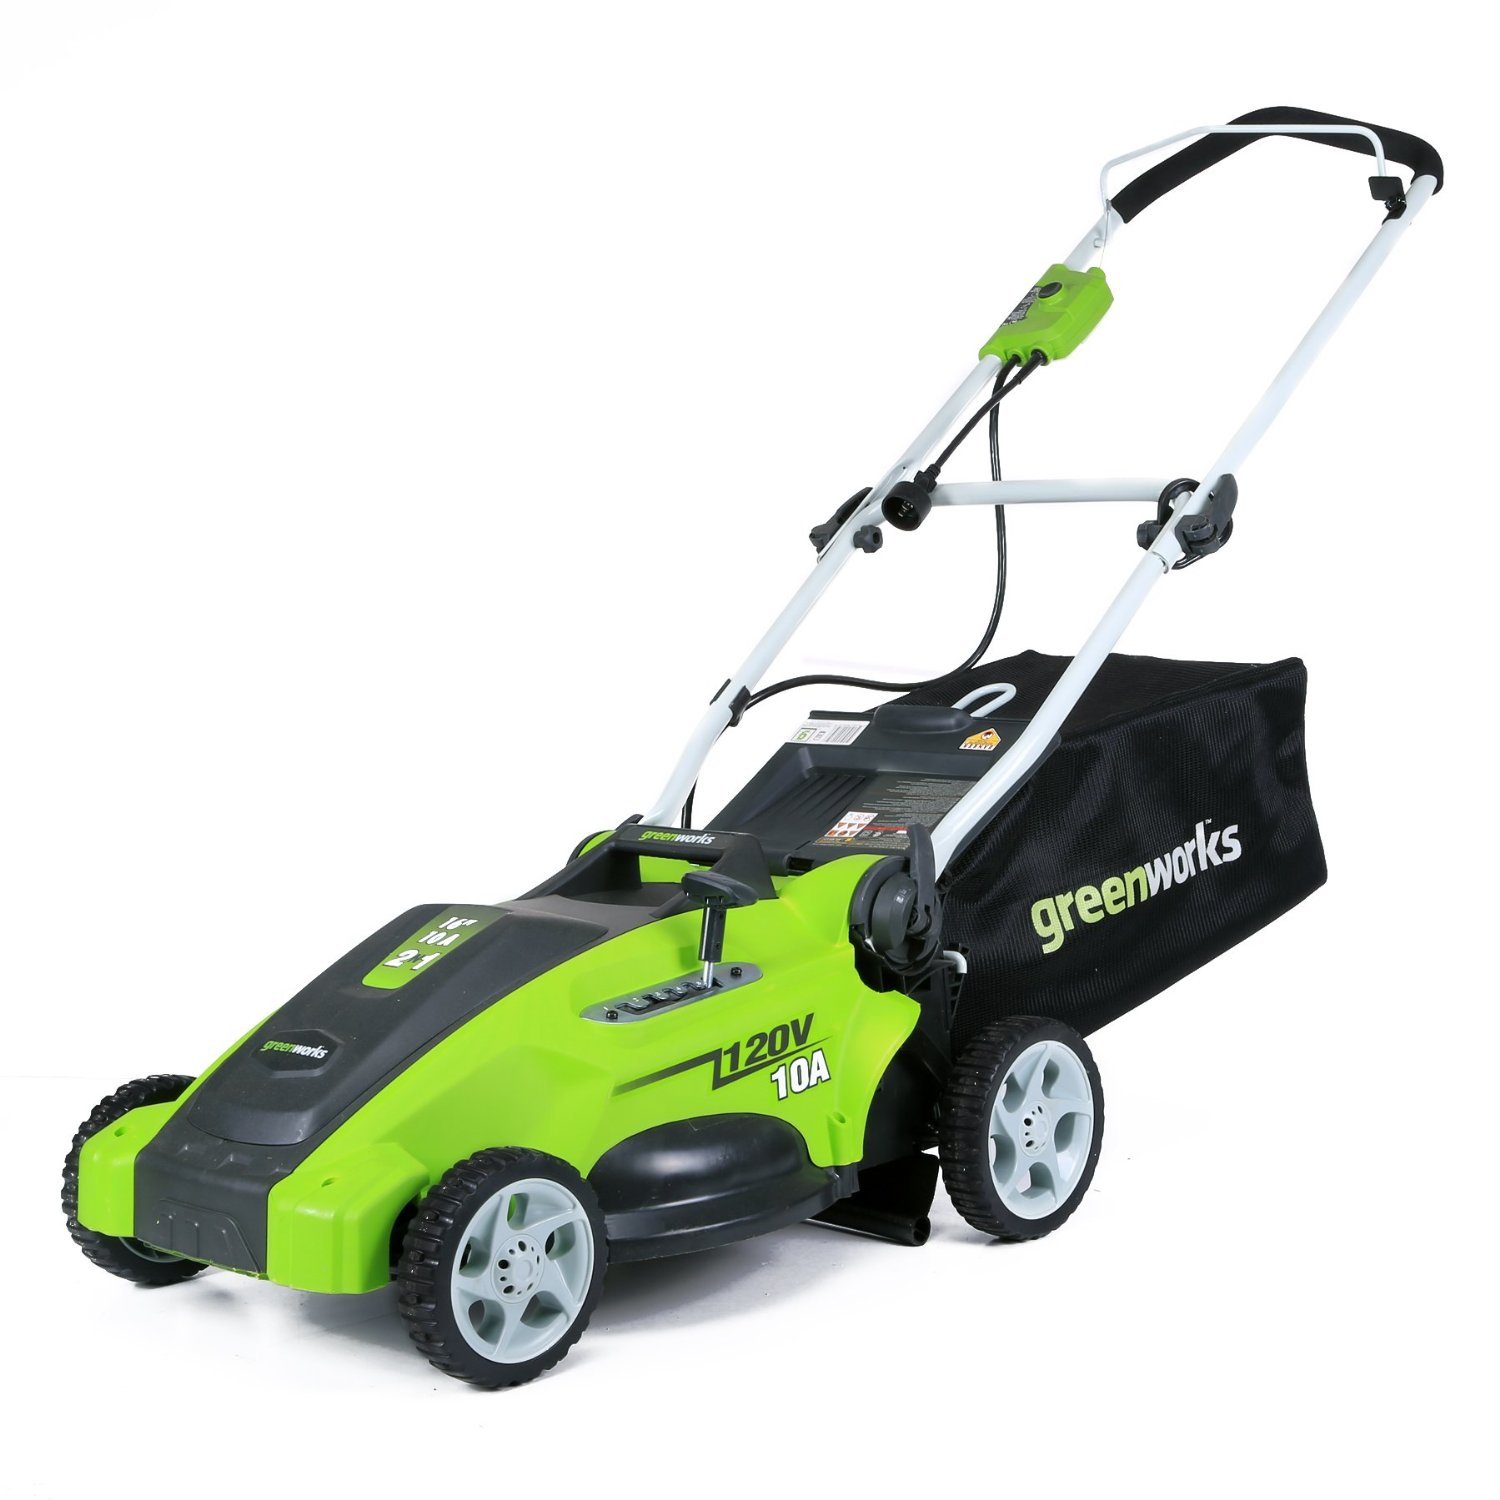 16-Inch Corded Lawn Mower